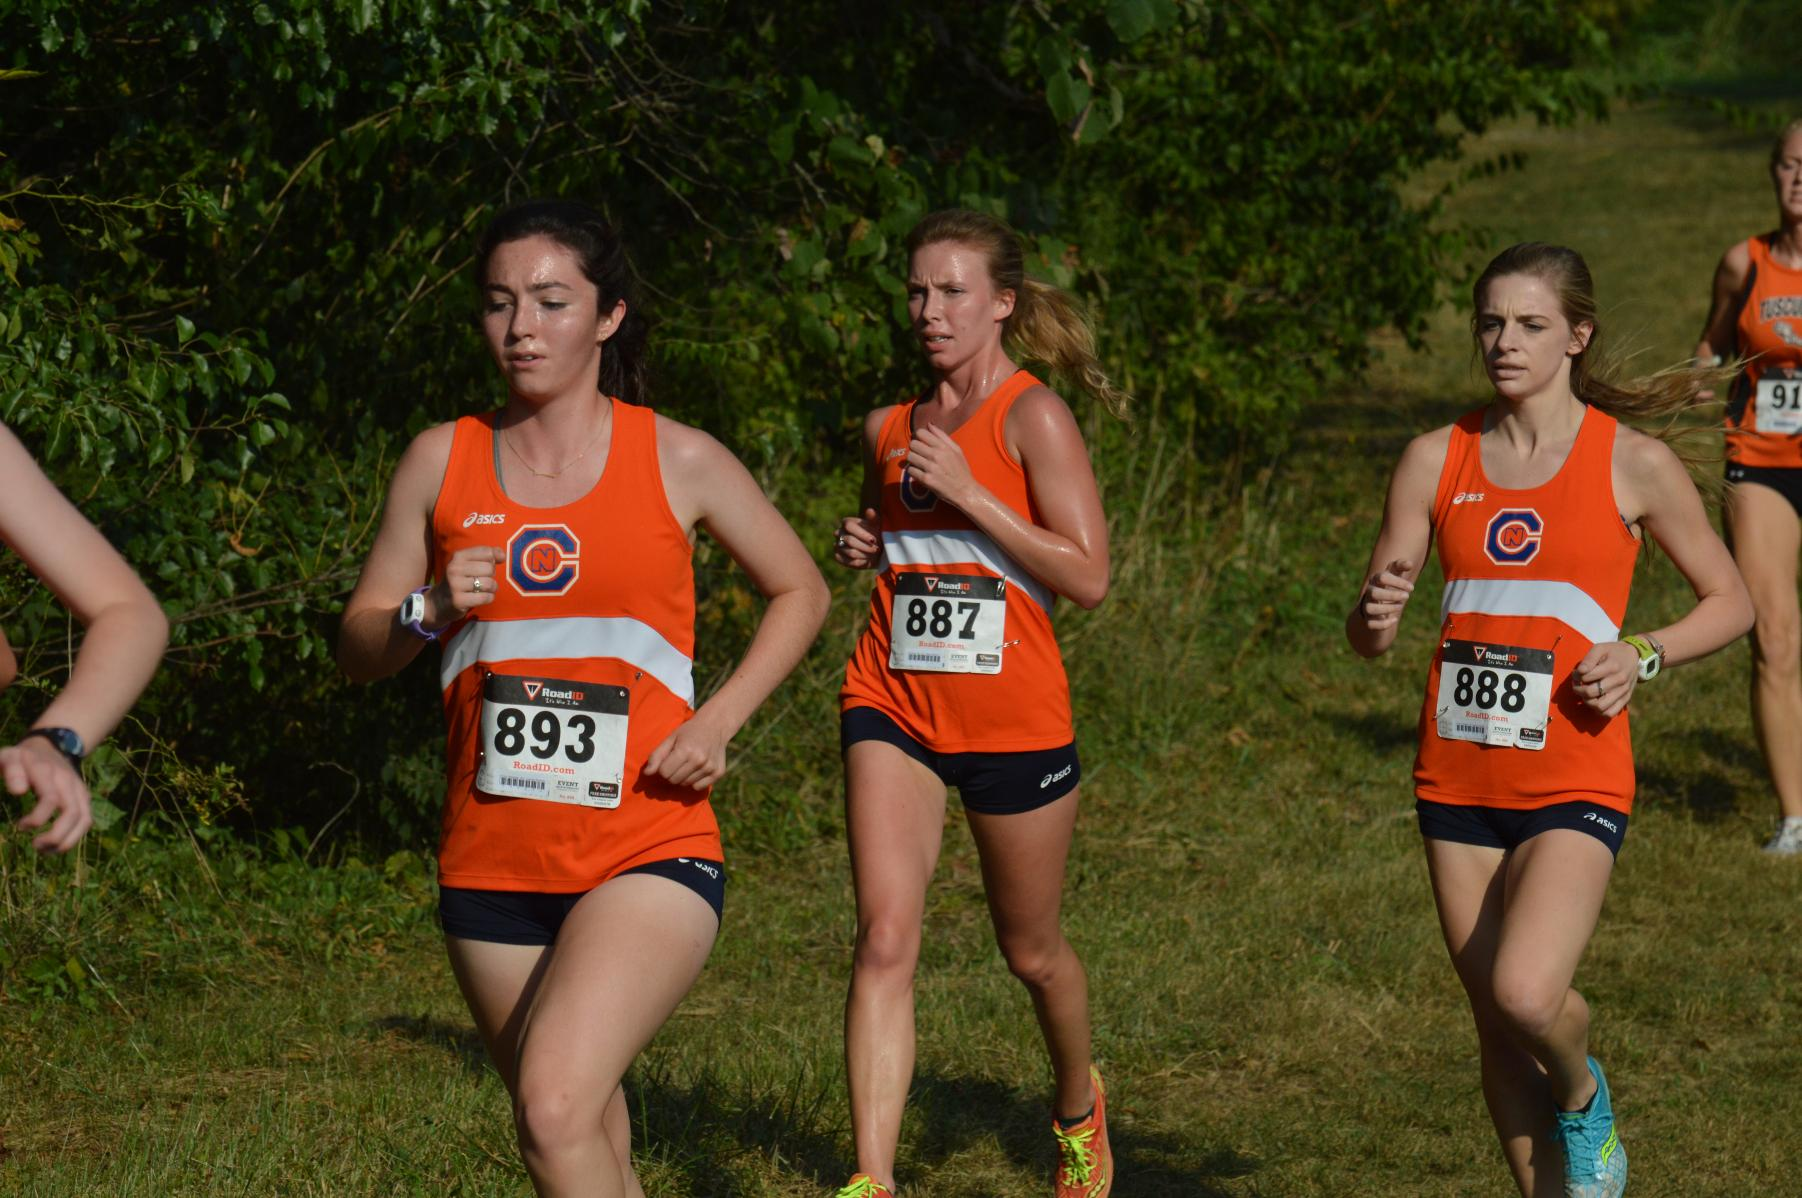 Eagles eager to fly at Asheville Cross Country Invitational